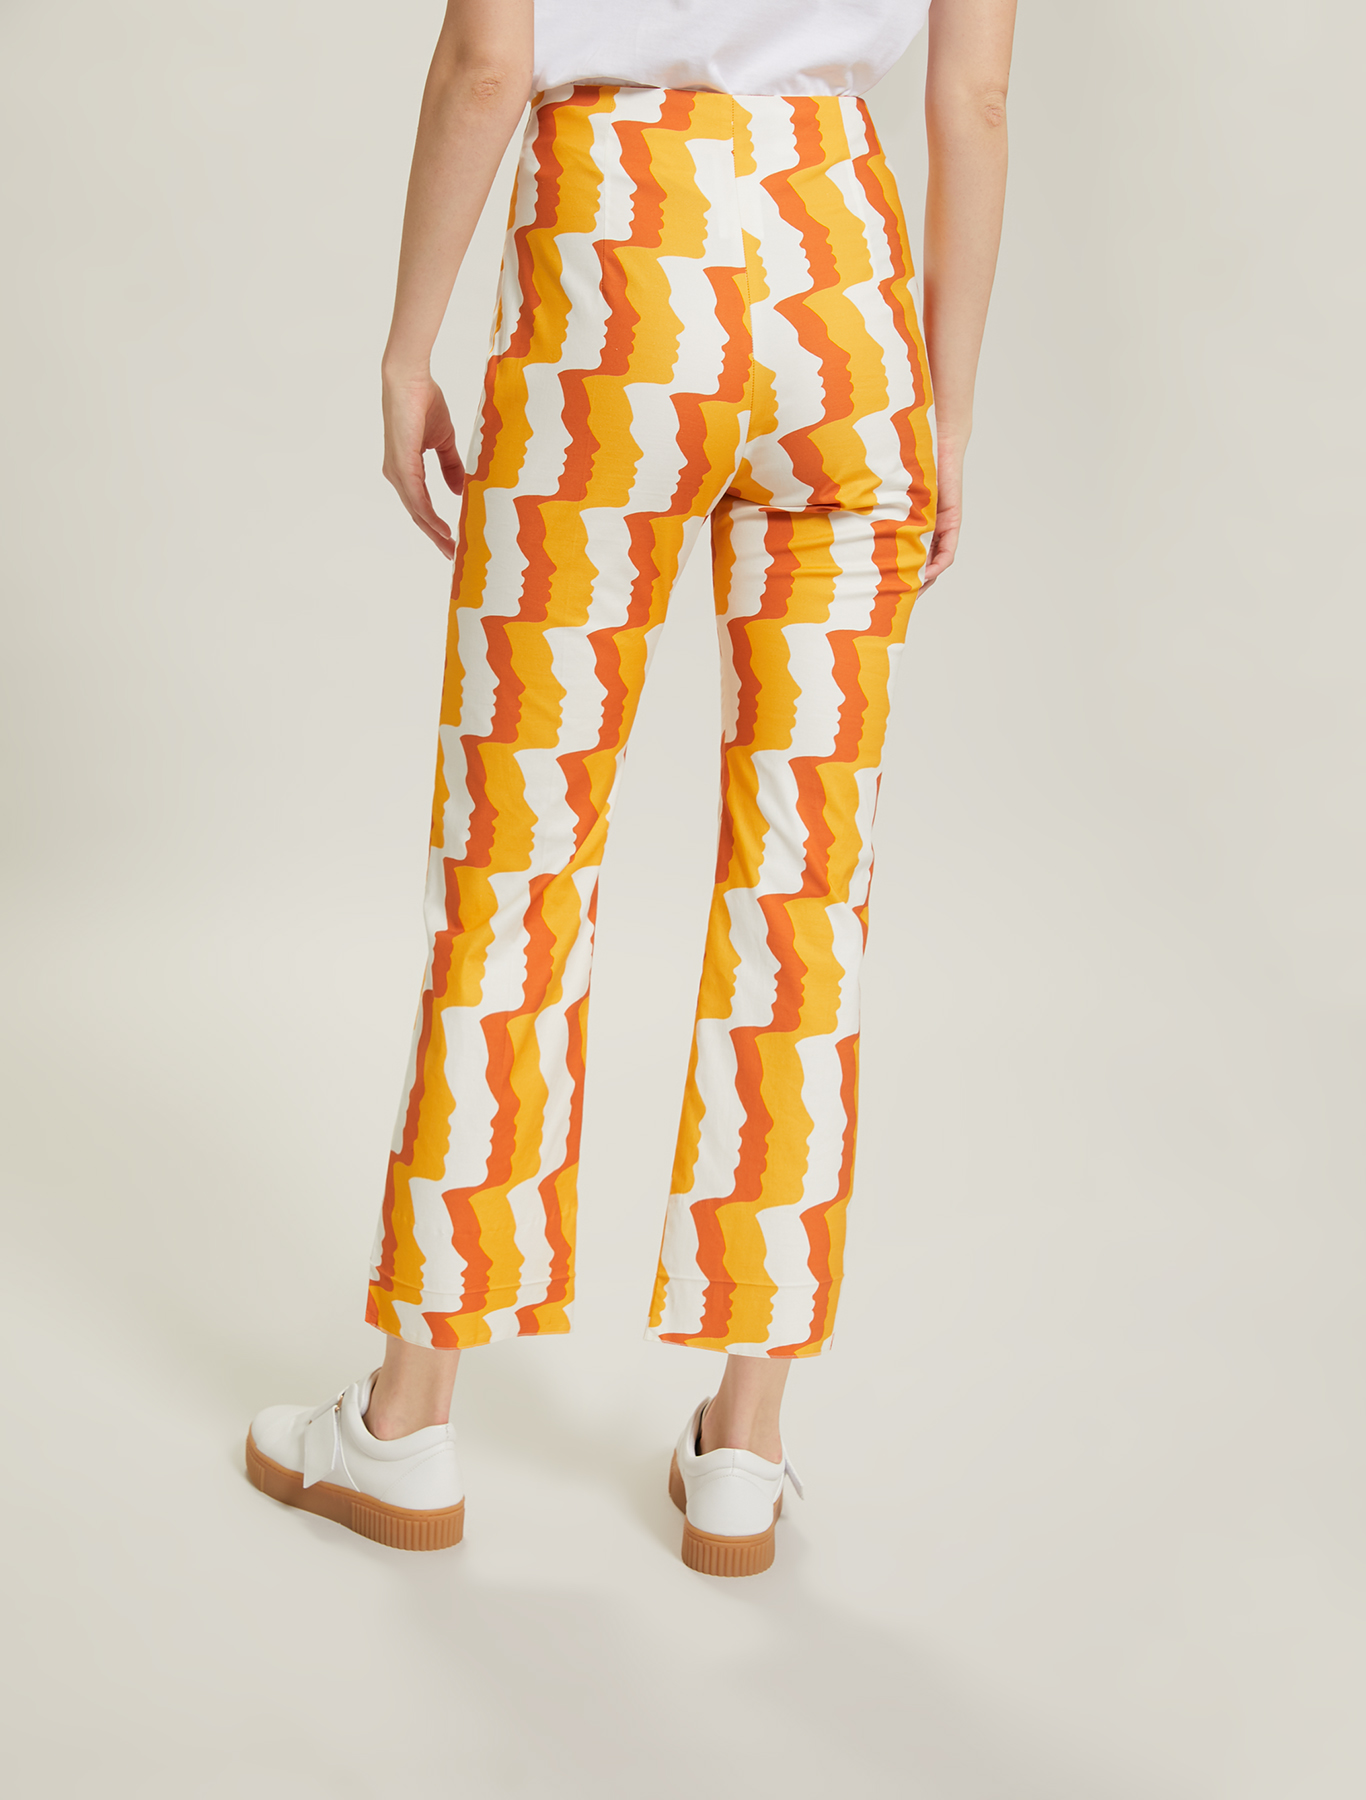 Sunset Road cotton trousers - terracotta pattern - pennyblack